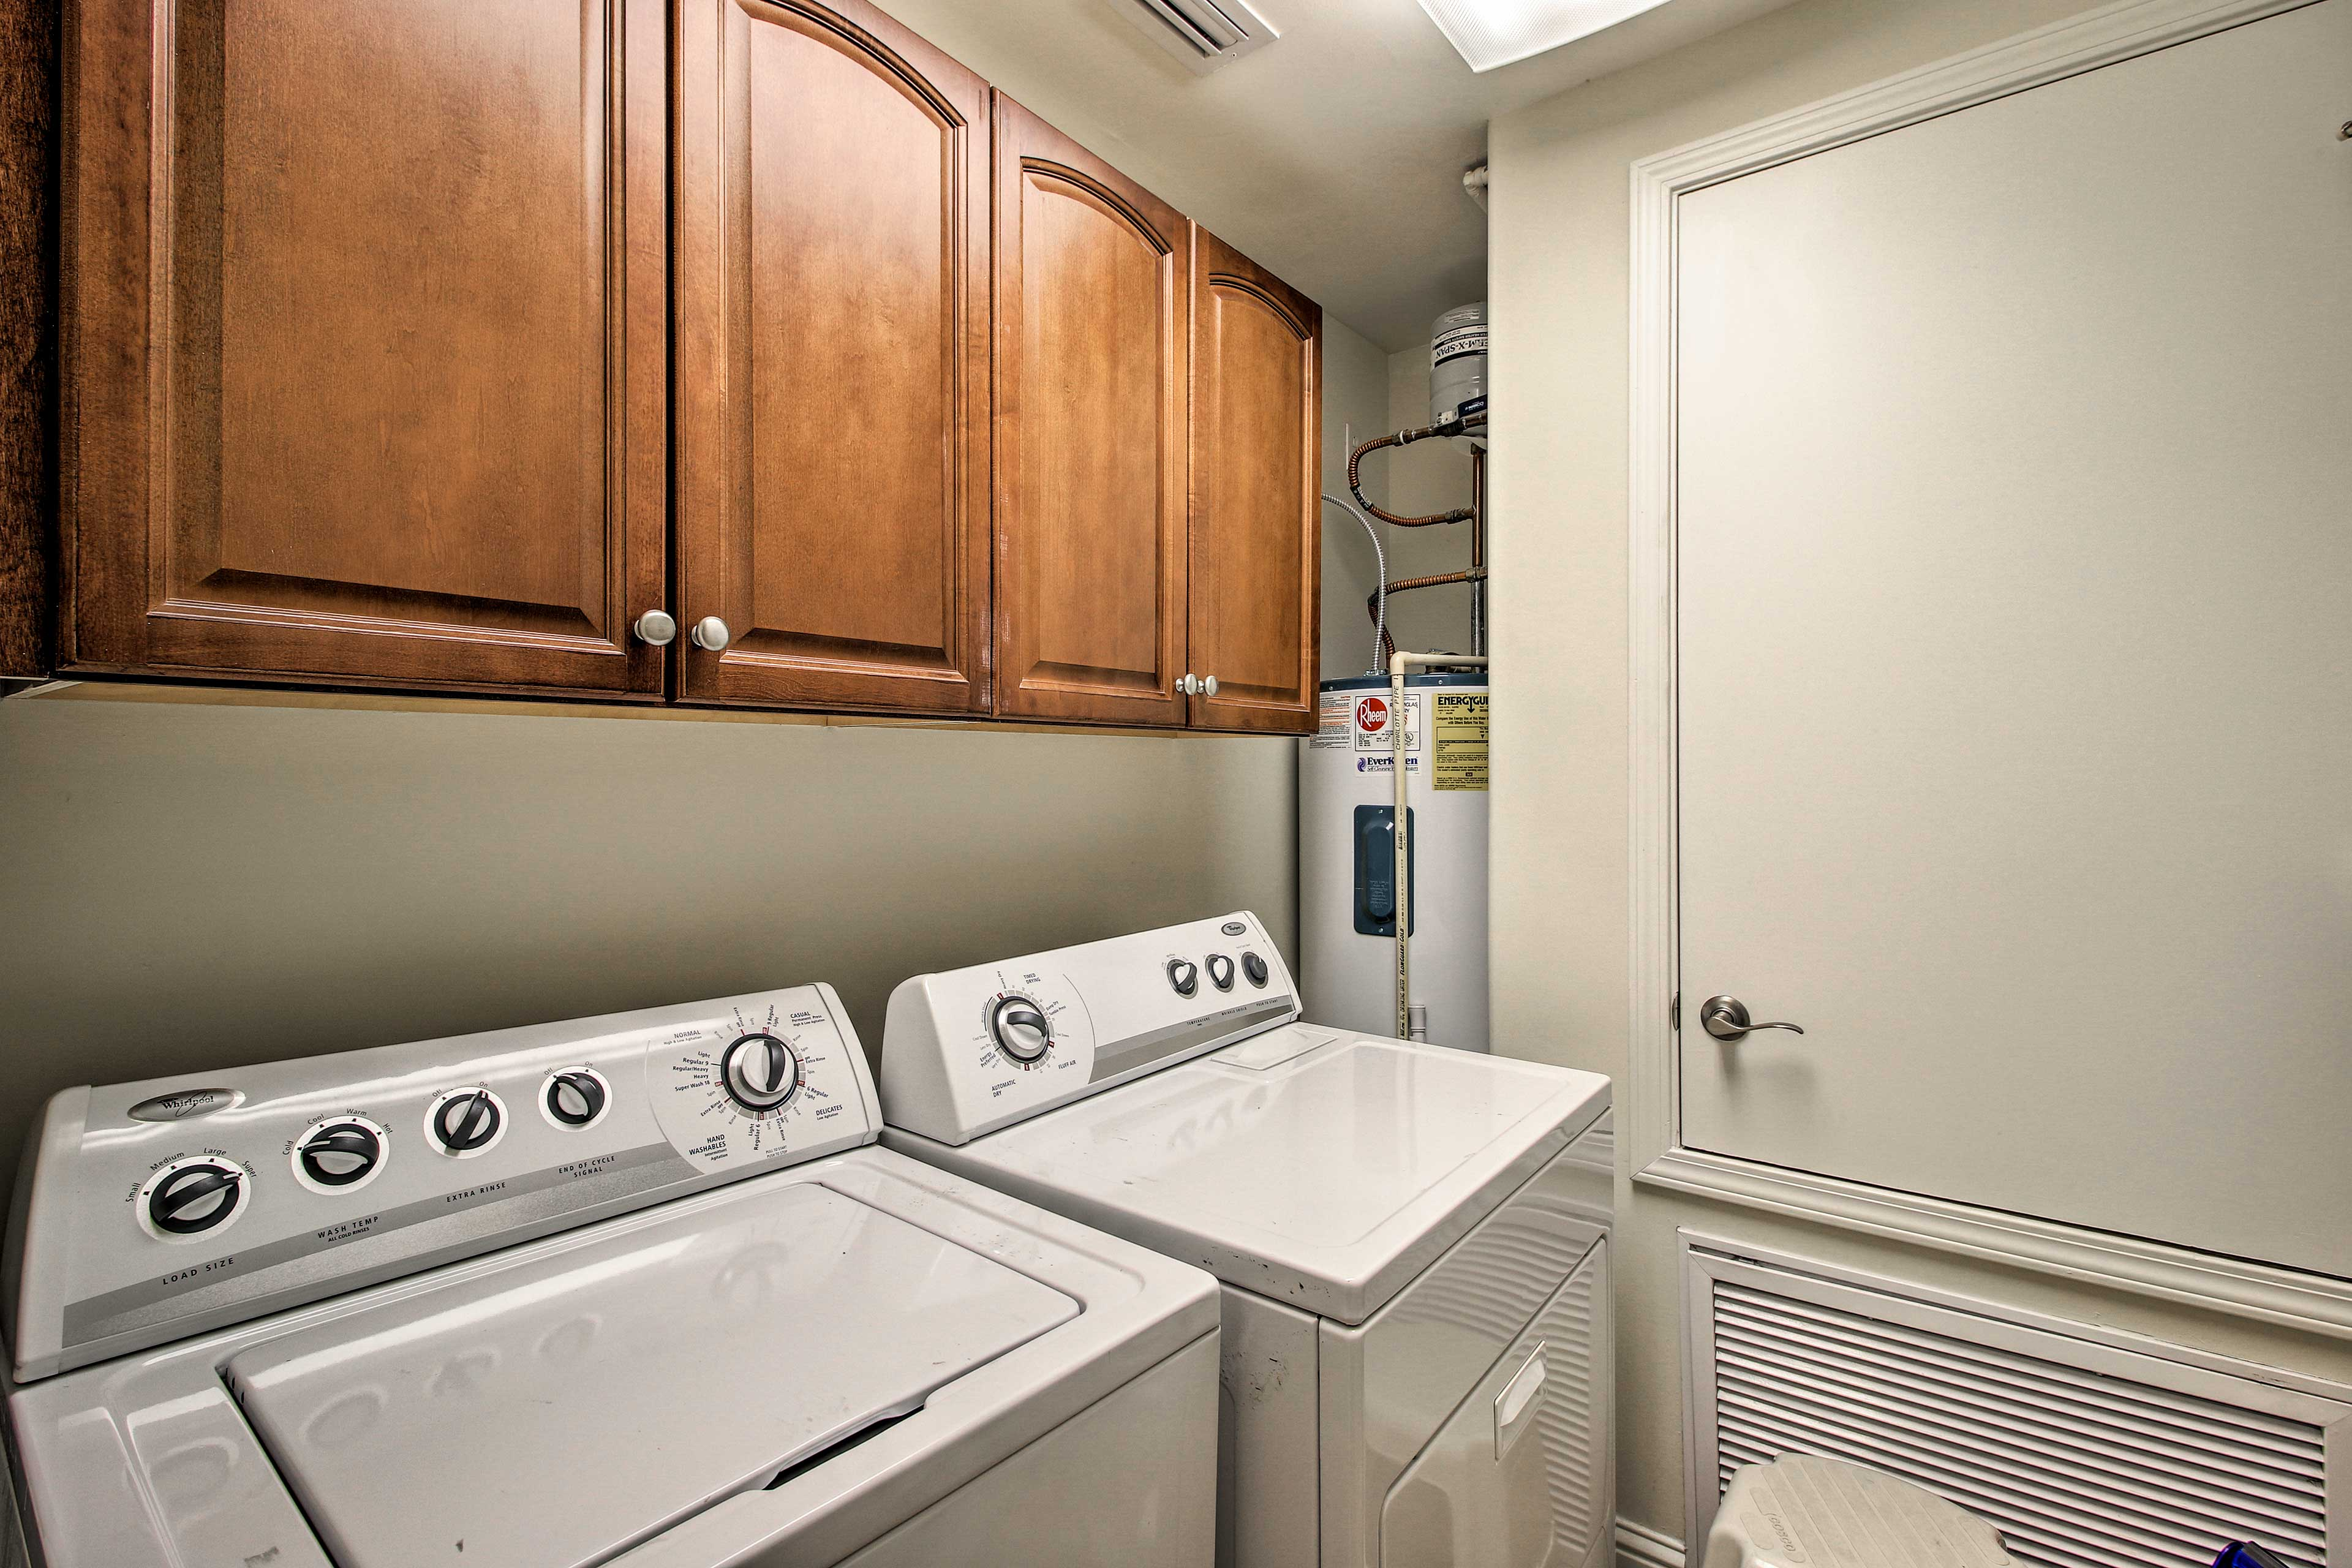 Keep your clothes clean with the laundry machines.